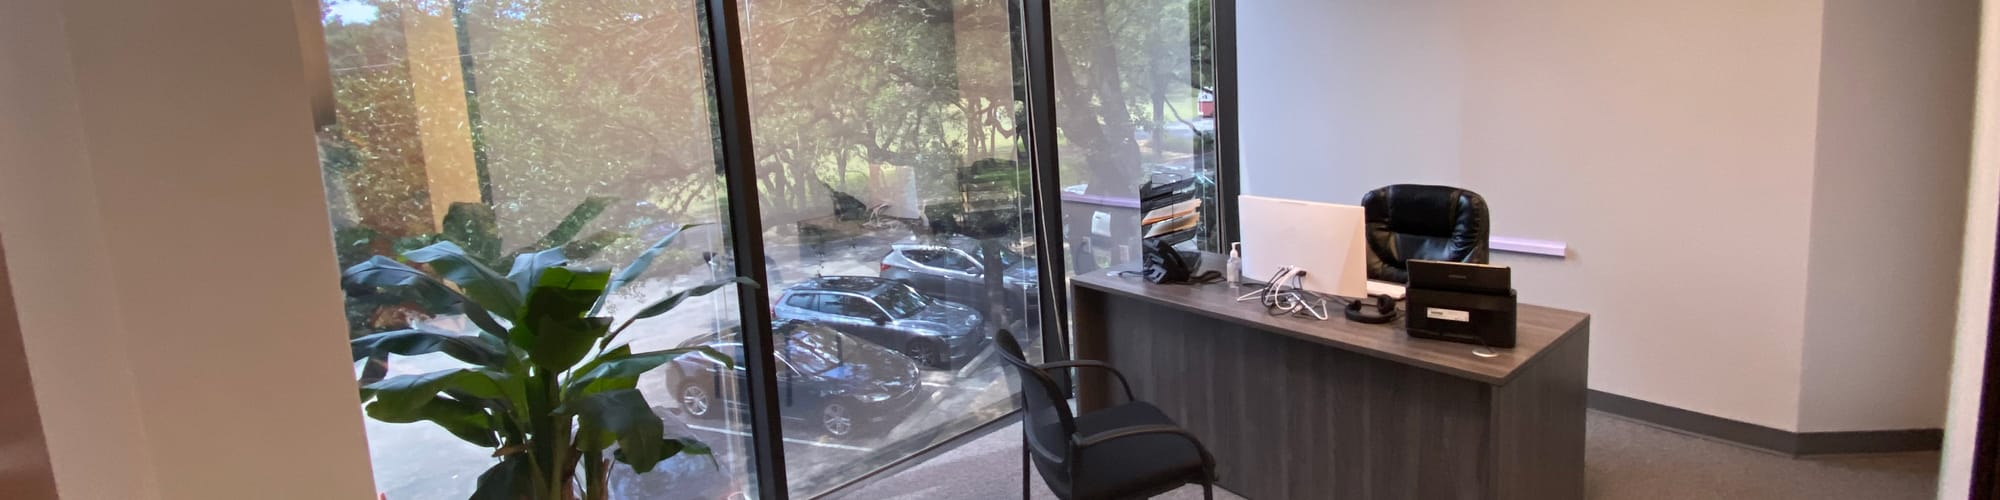 Westlake Place Sublease